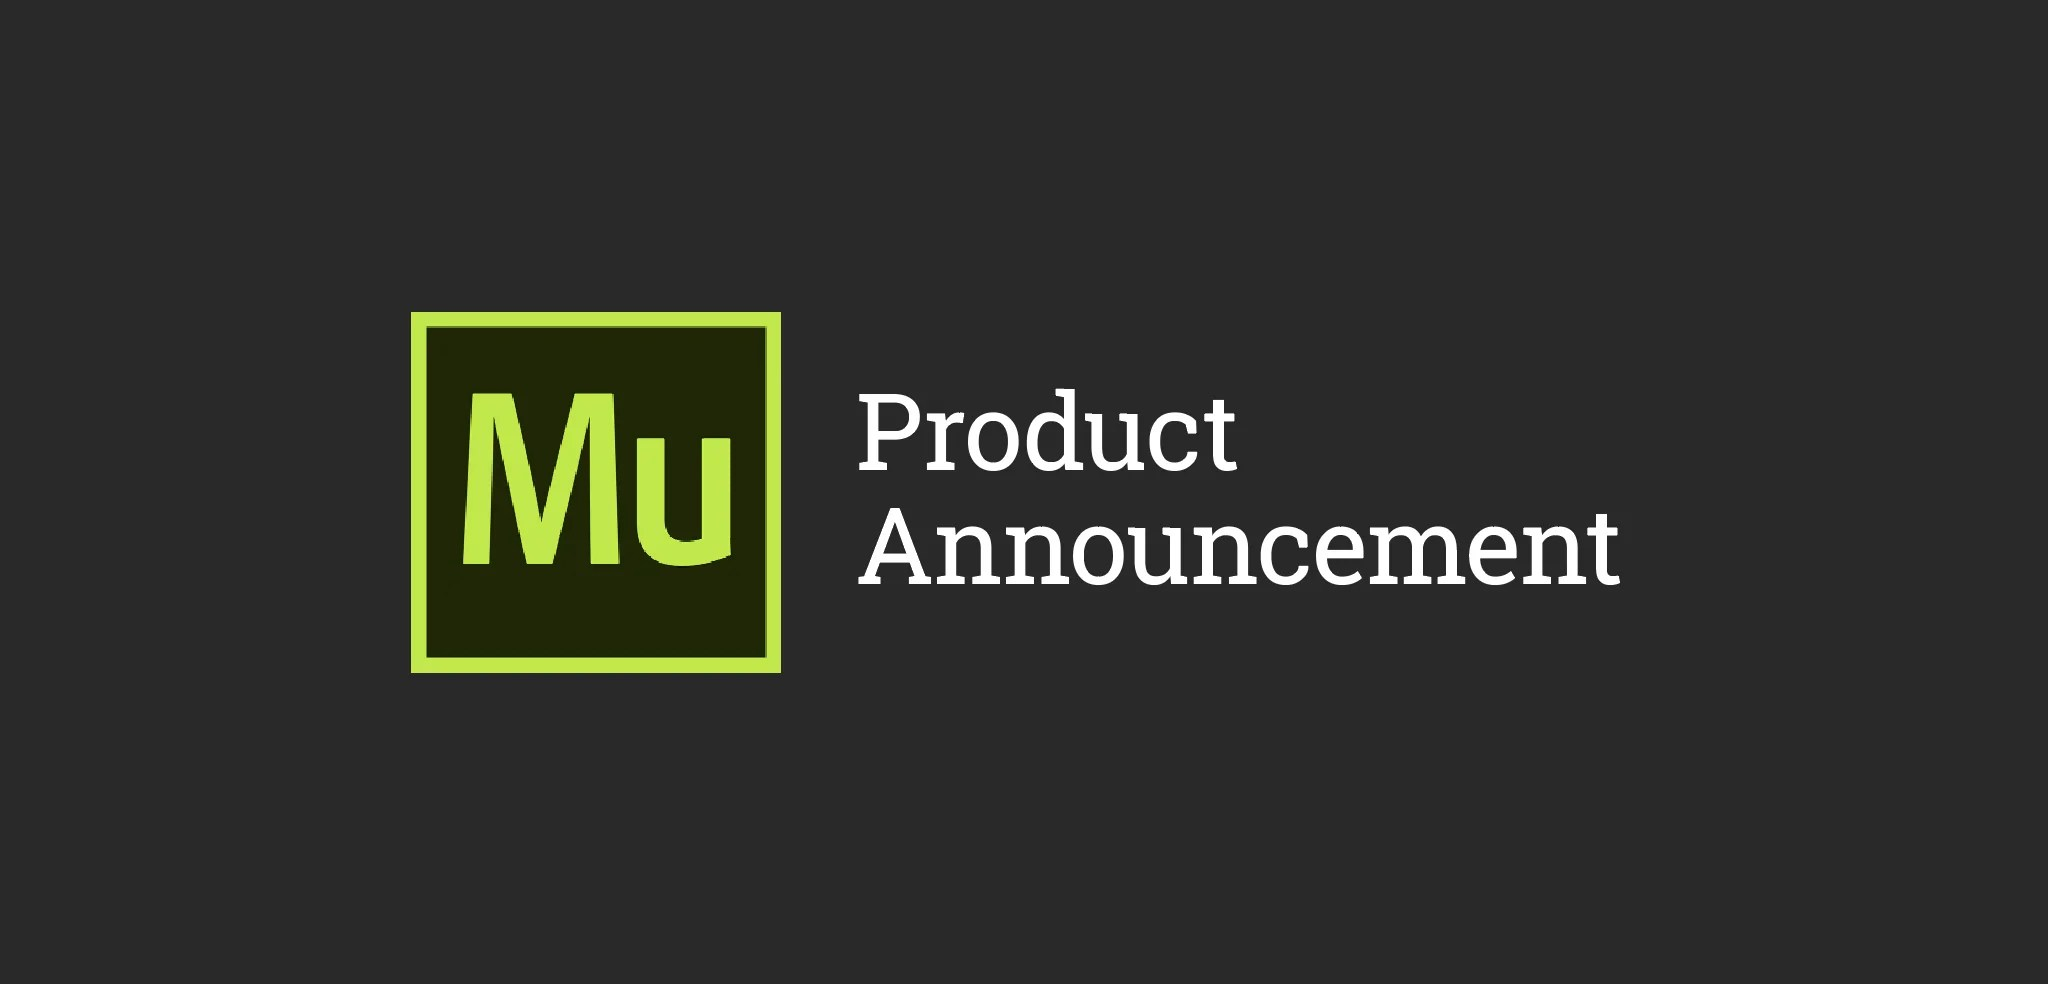 Adobe Photo The Final Release Of Adobe Muse March 2018 End Of Development